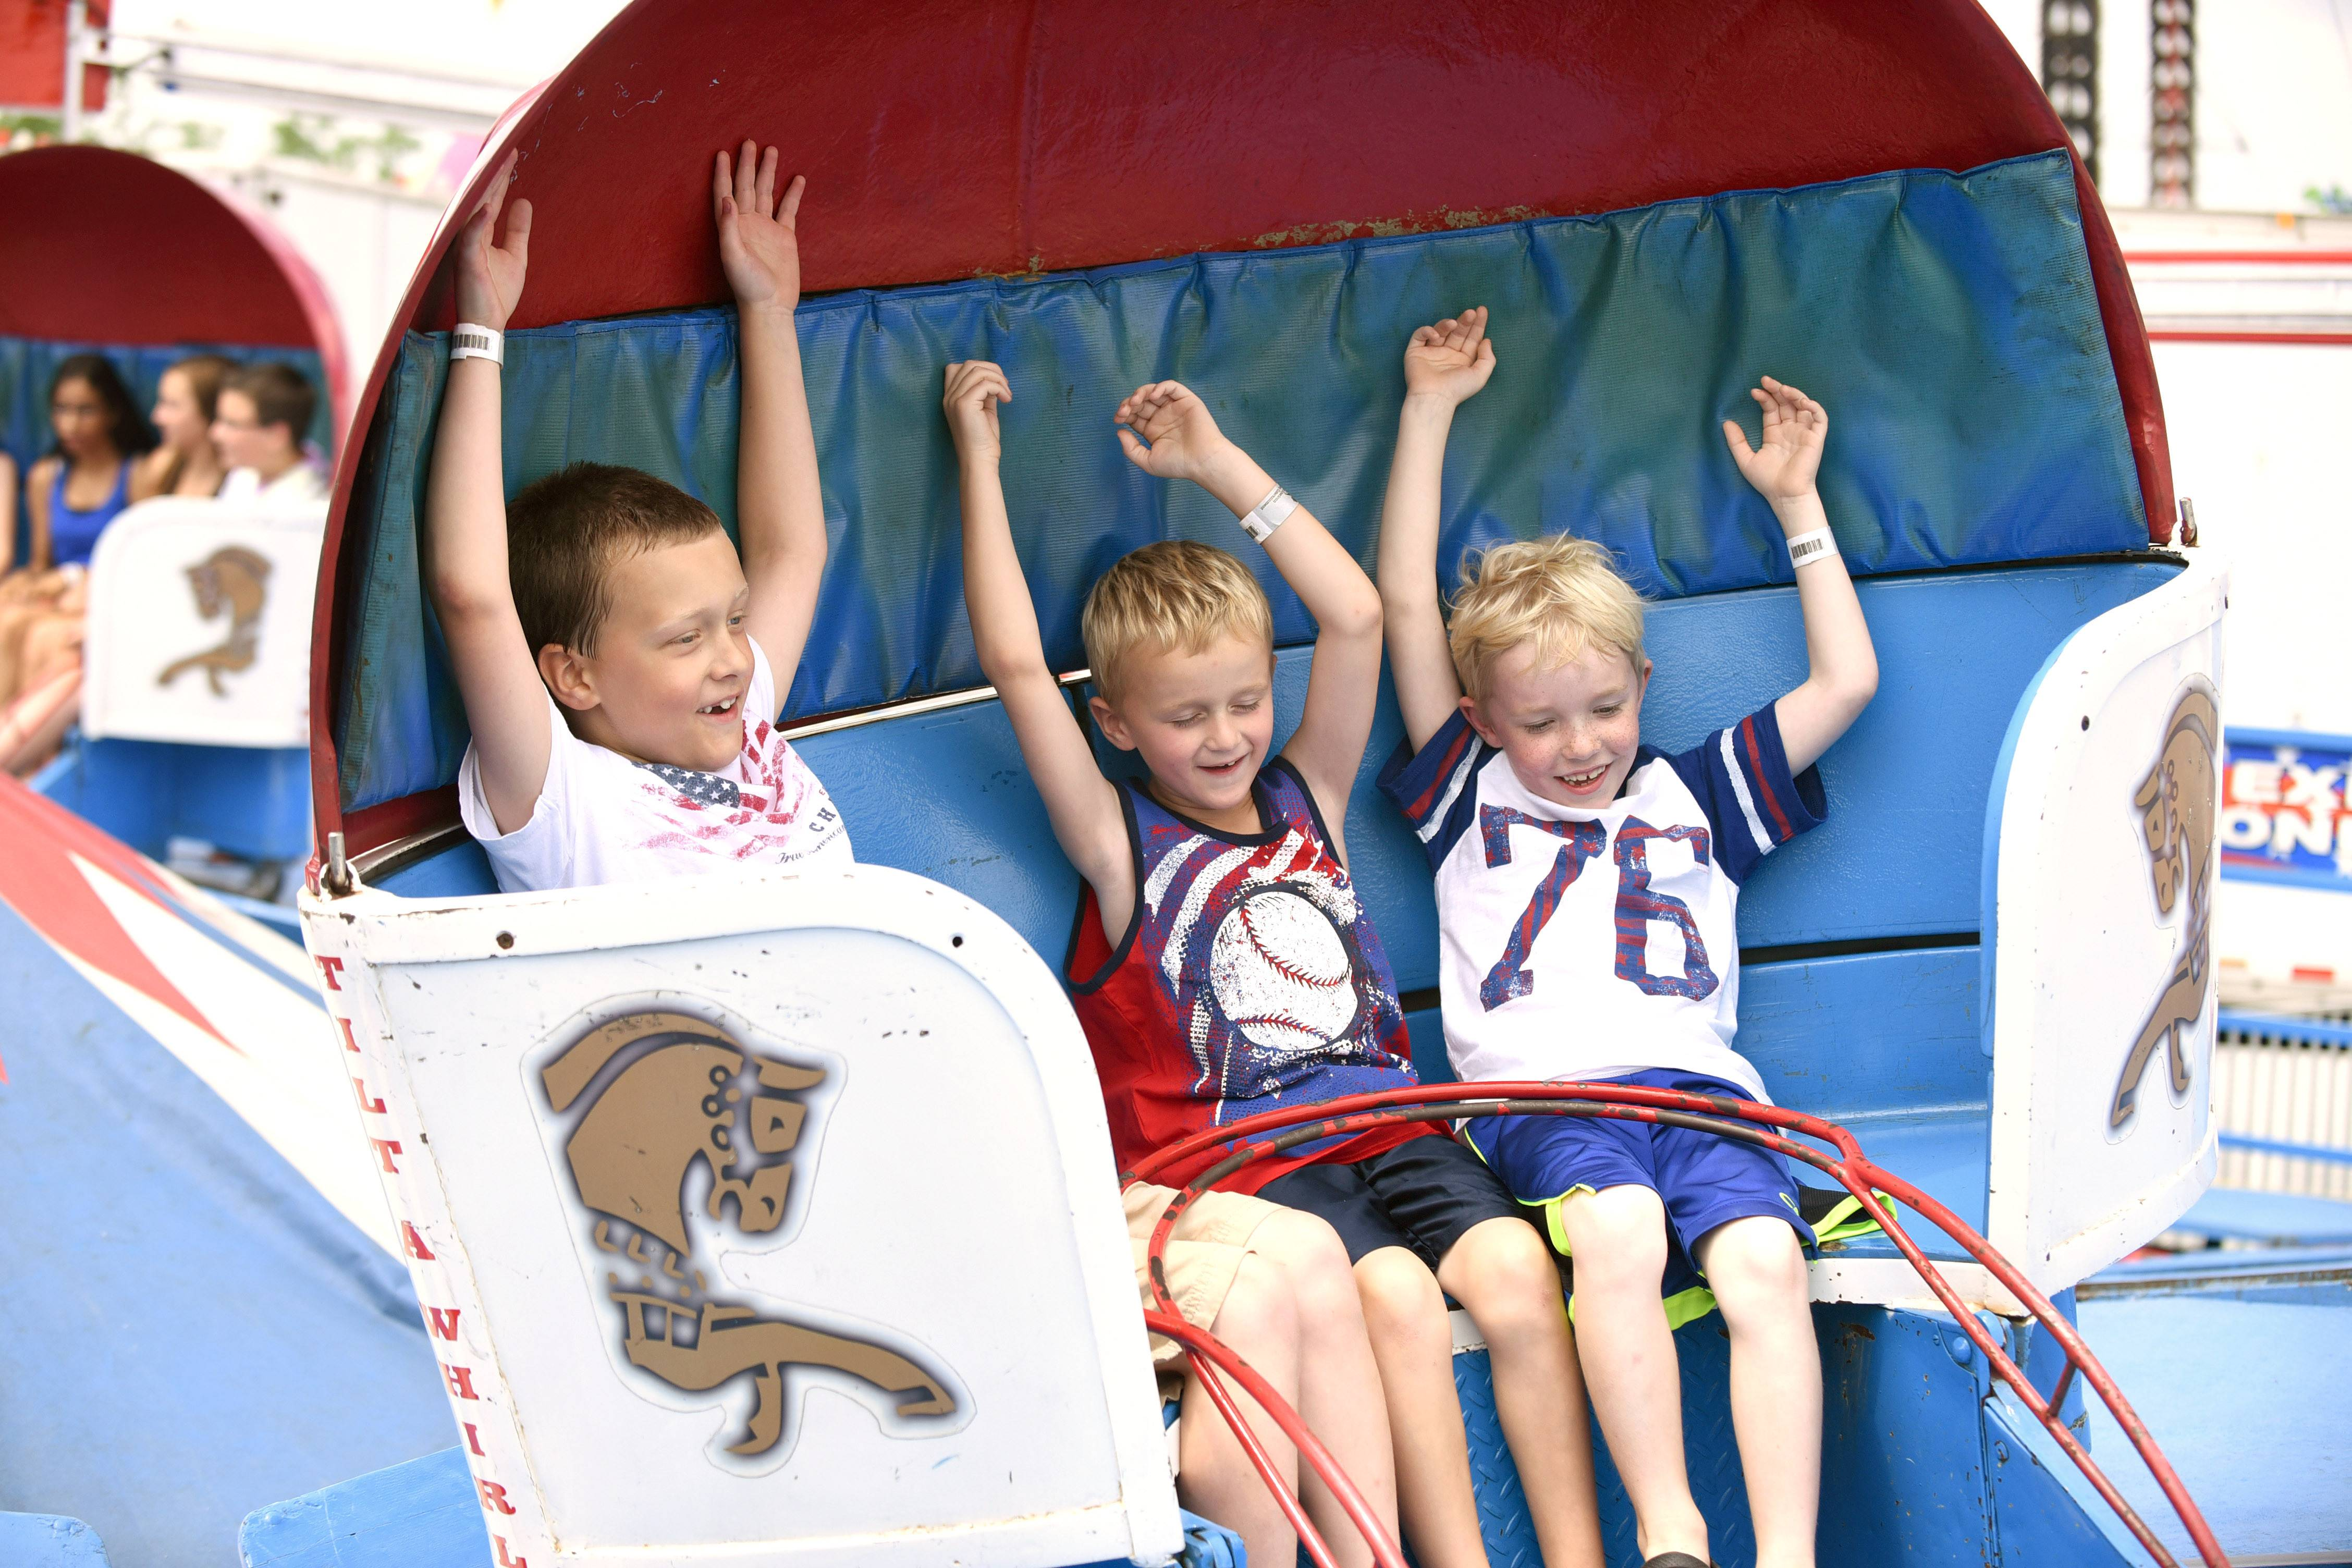 Jack Jerome, 8, from left, Daniel Gunsteen, 7, and Noah Fleck, 7, all of Bartlett, enjoy their spinning car on the Tilt-a-Whirl at Bartlett's 22nd annual Fourth of July festival Friday.